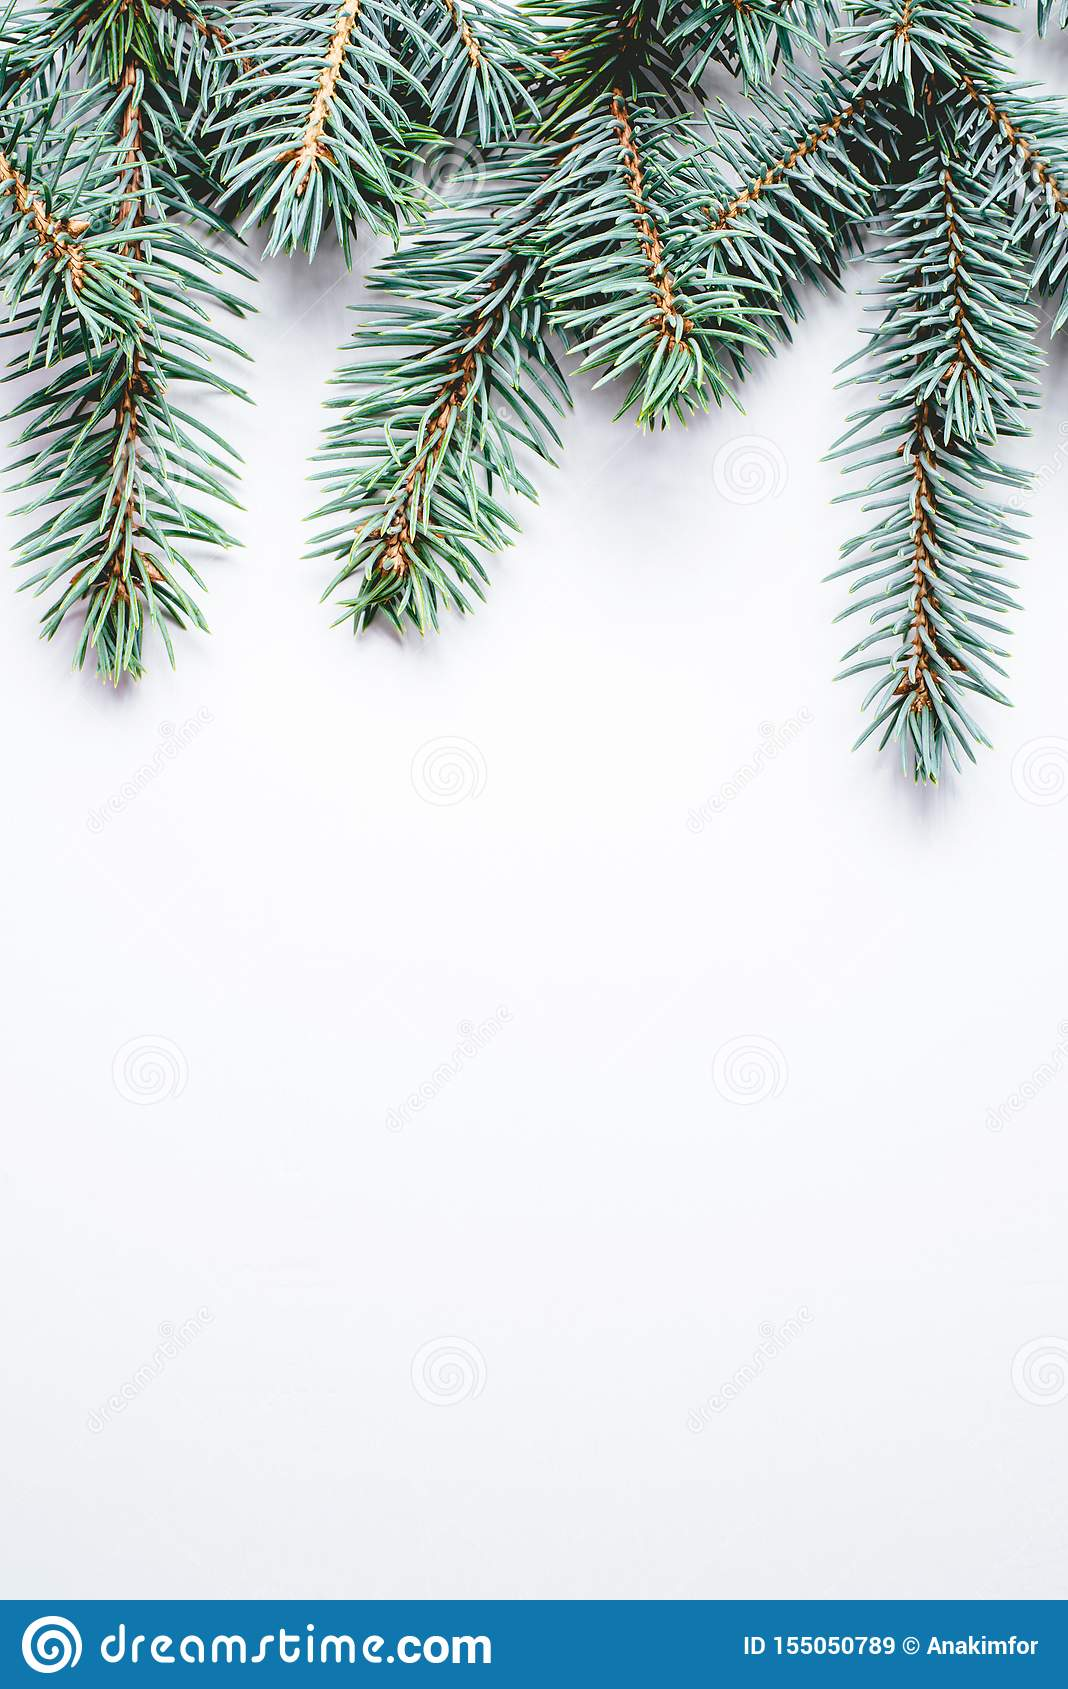 109 432 White Christmas Wallpaper Photos Free Royalty Free Stock Photos From Dreamstime